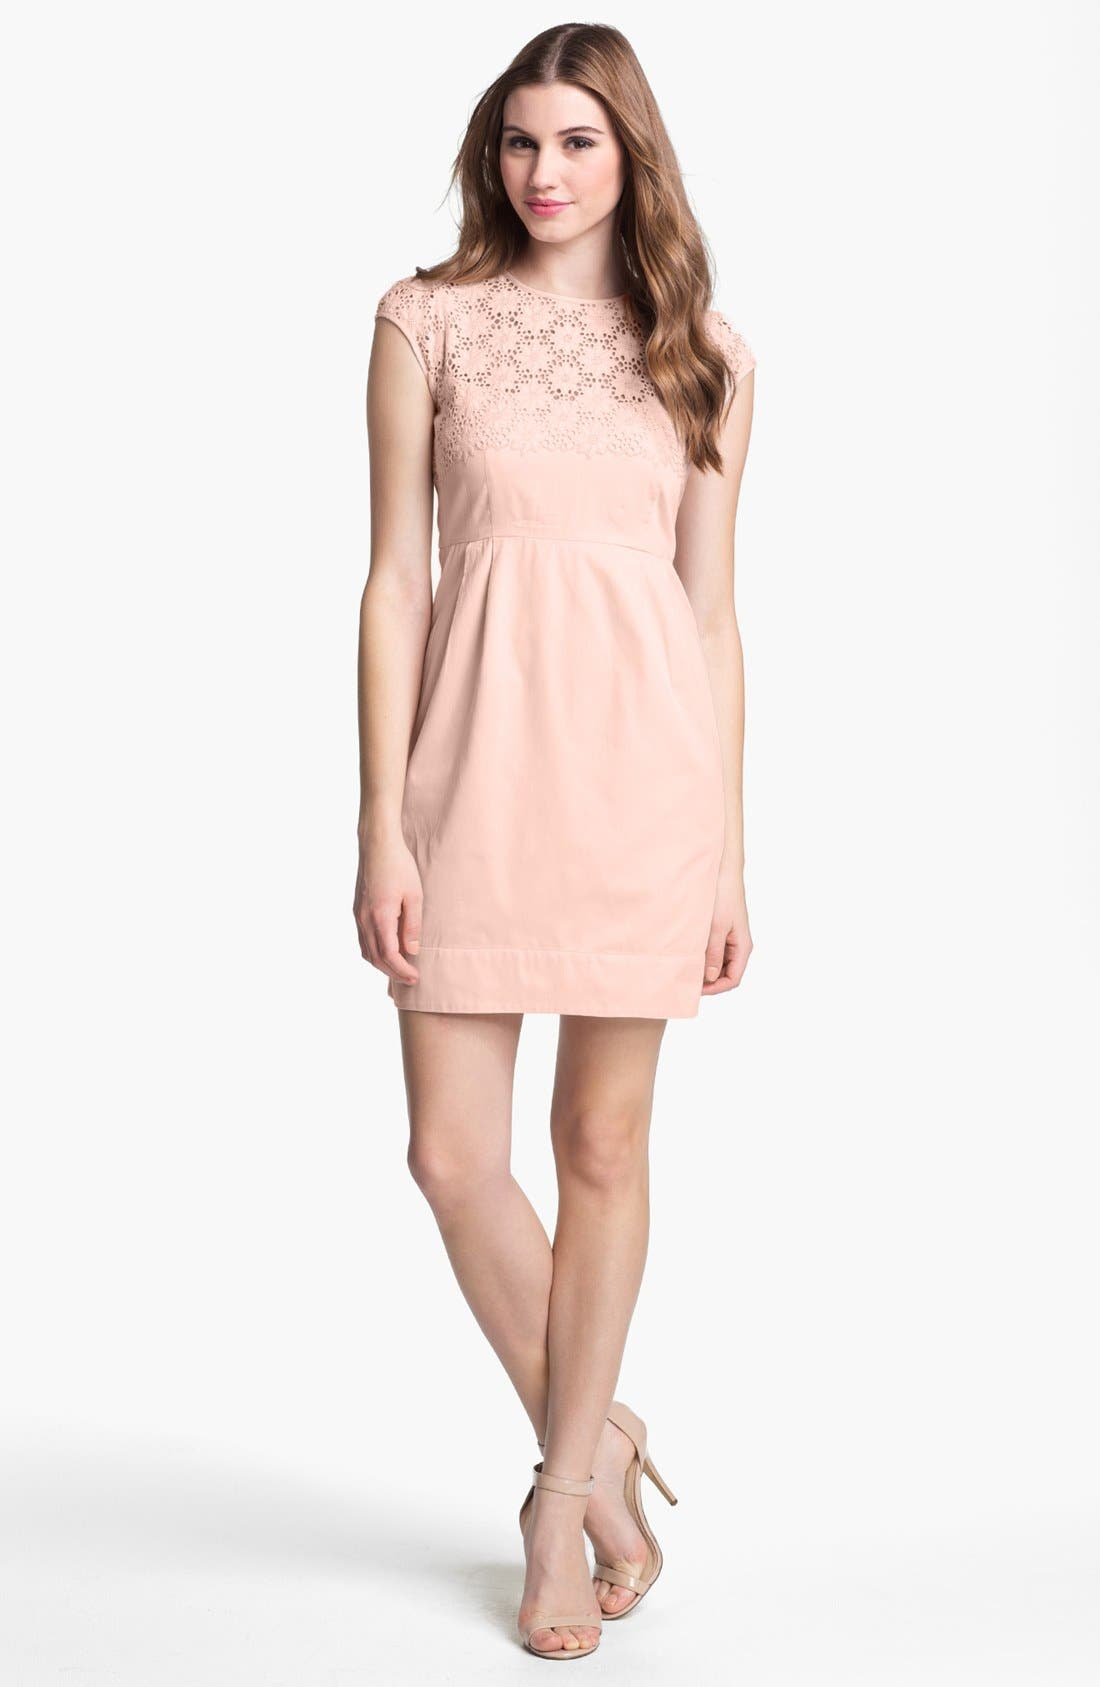 Alternate Image 1 Selected - French Connection 'Creamy' Embroidered Yoke Sheath Dress